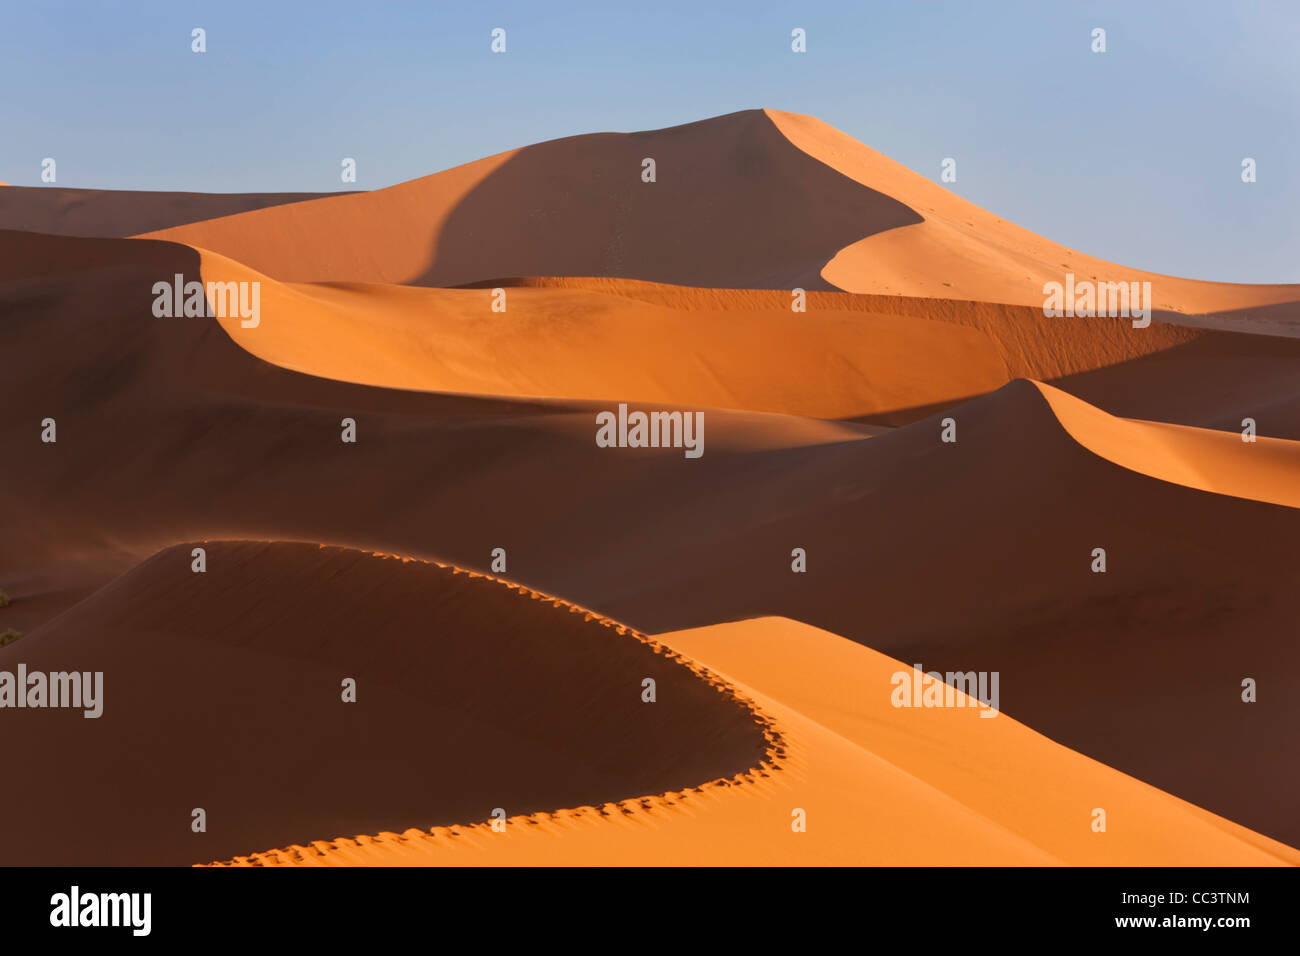 Dunes de sable, le Parc National Namib Naukluft, Namibie Photo Stock